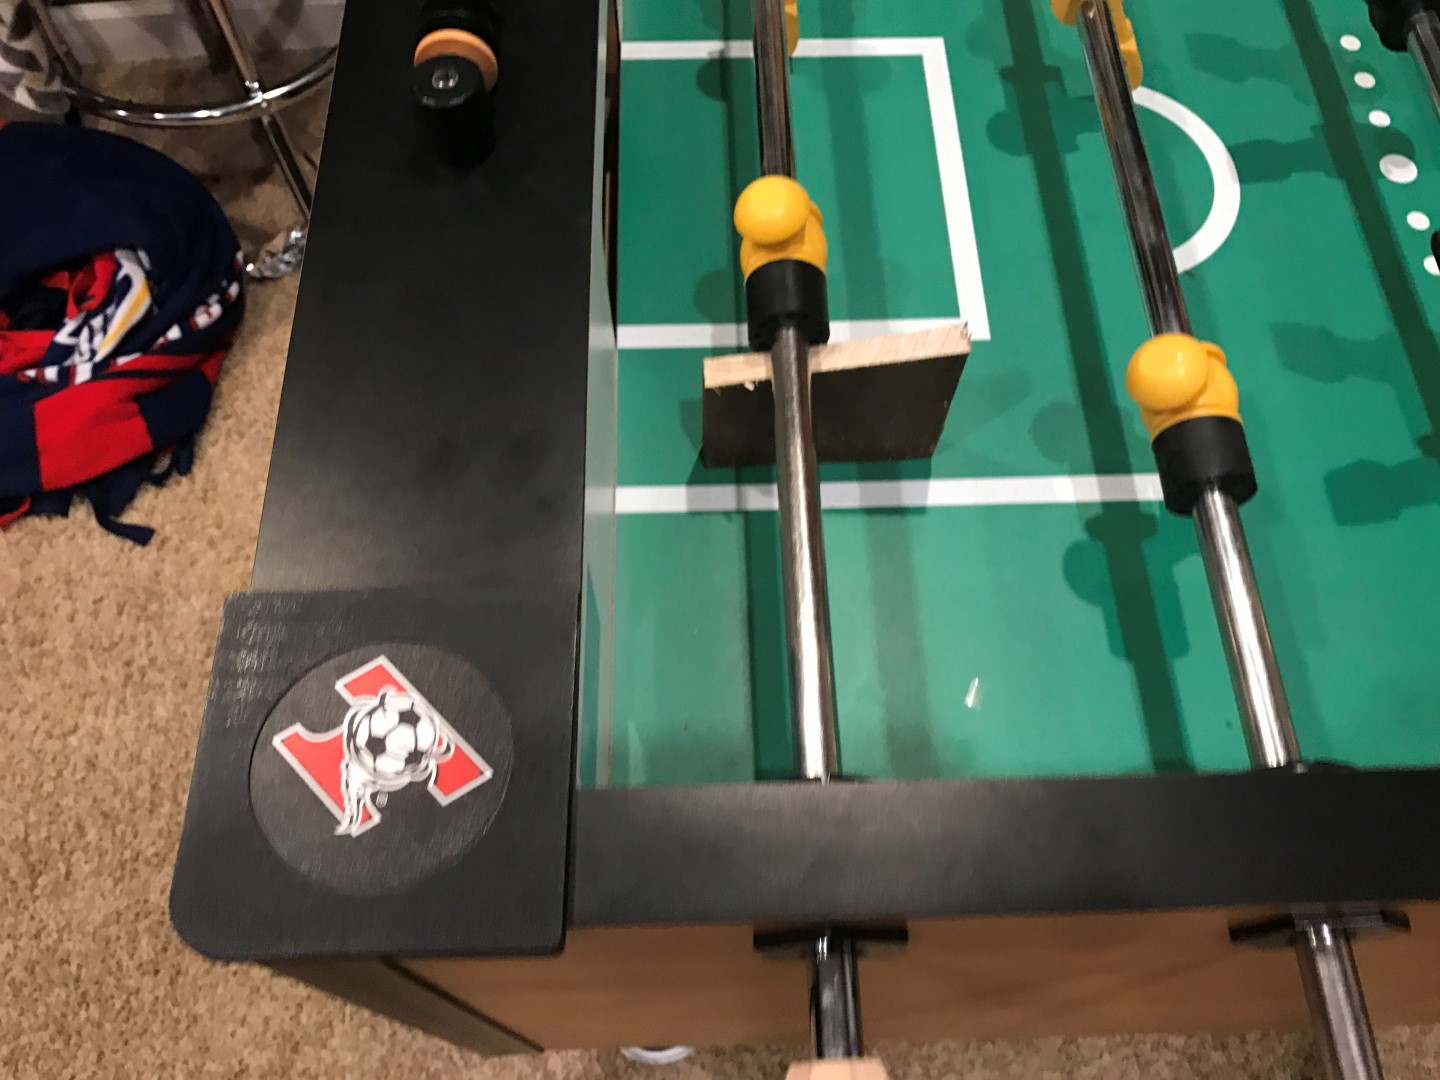 wood block used to add and remove foosball players